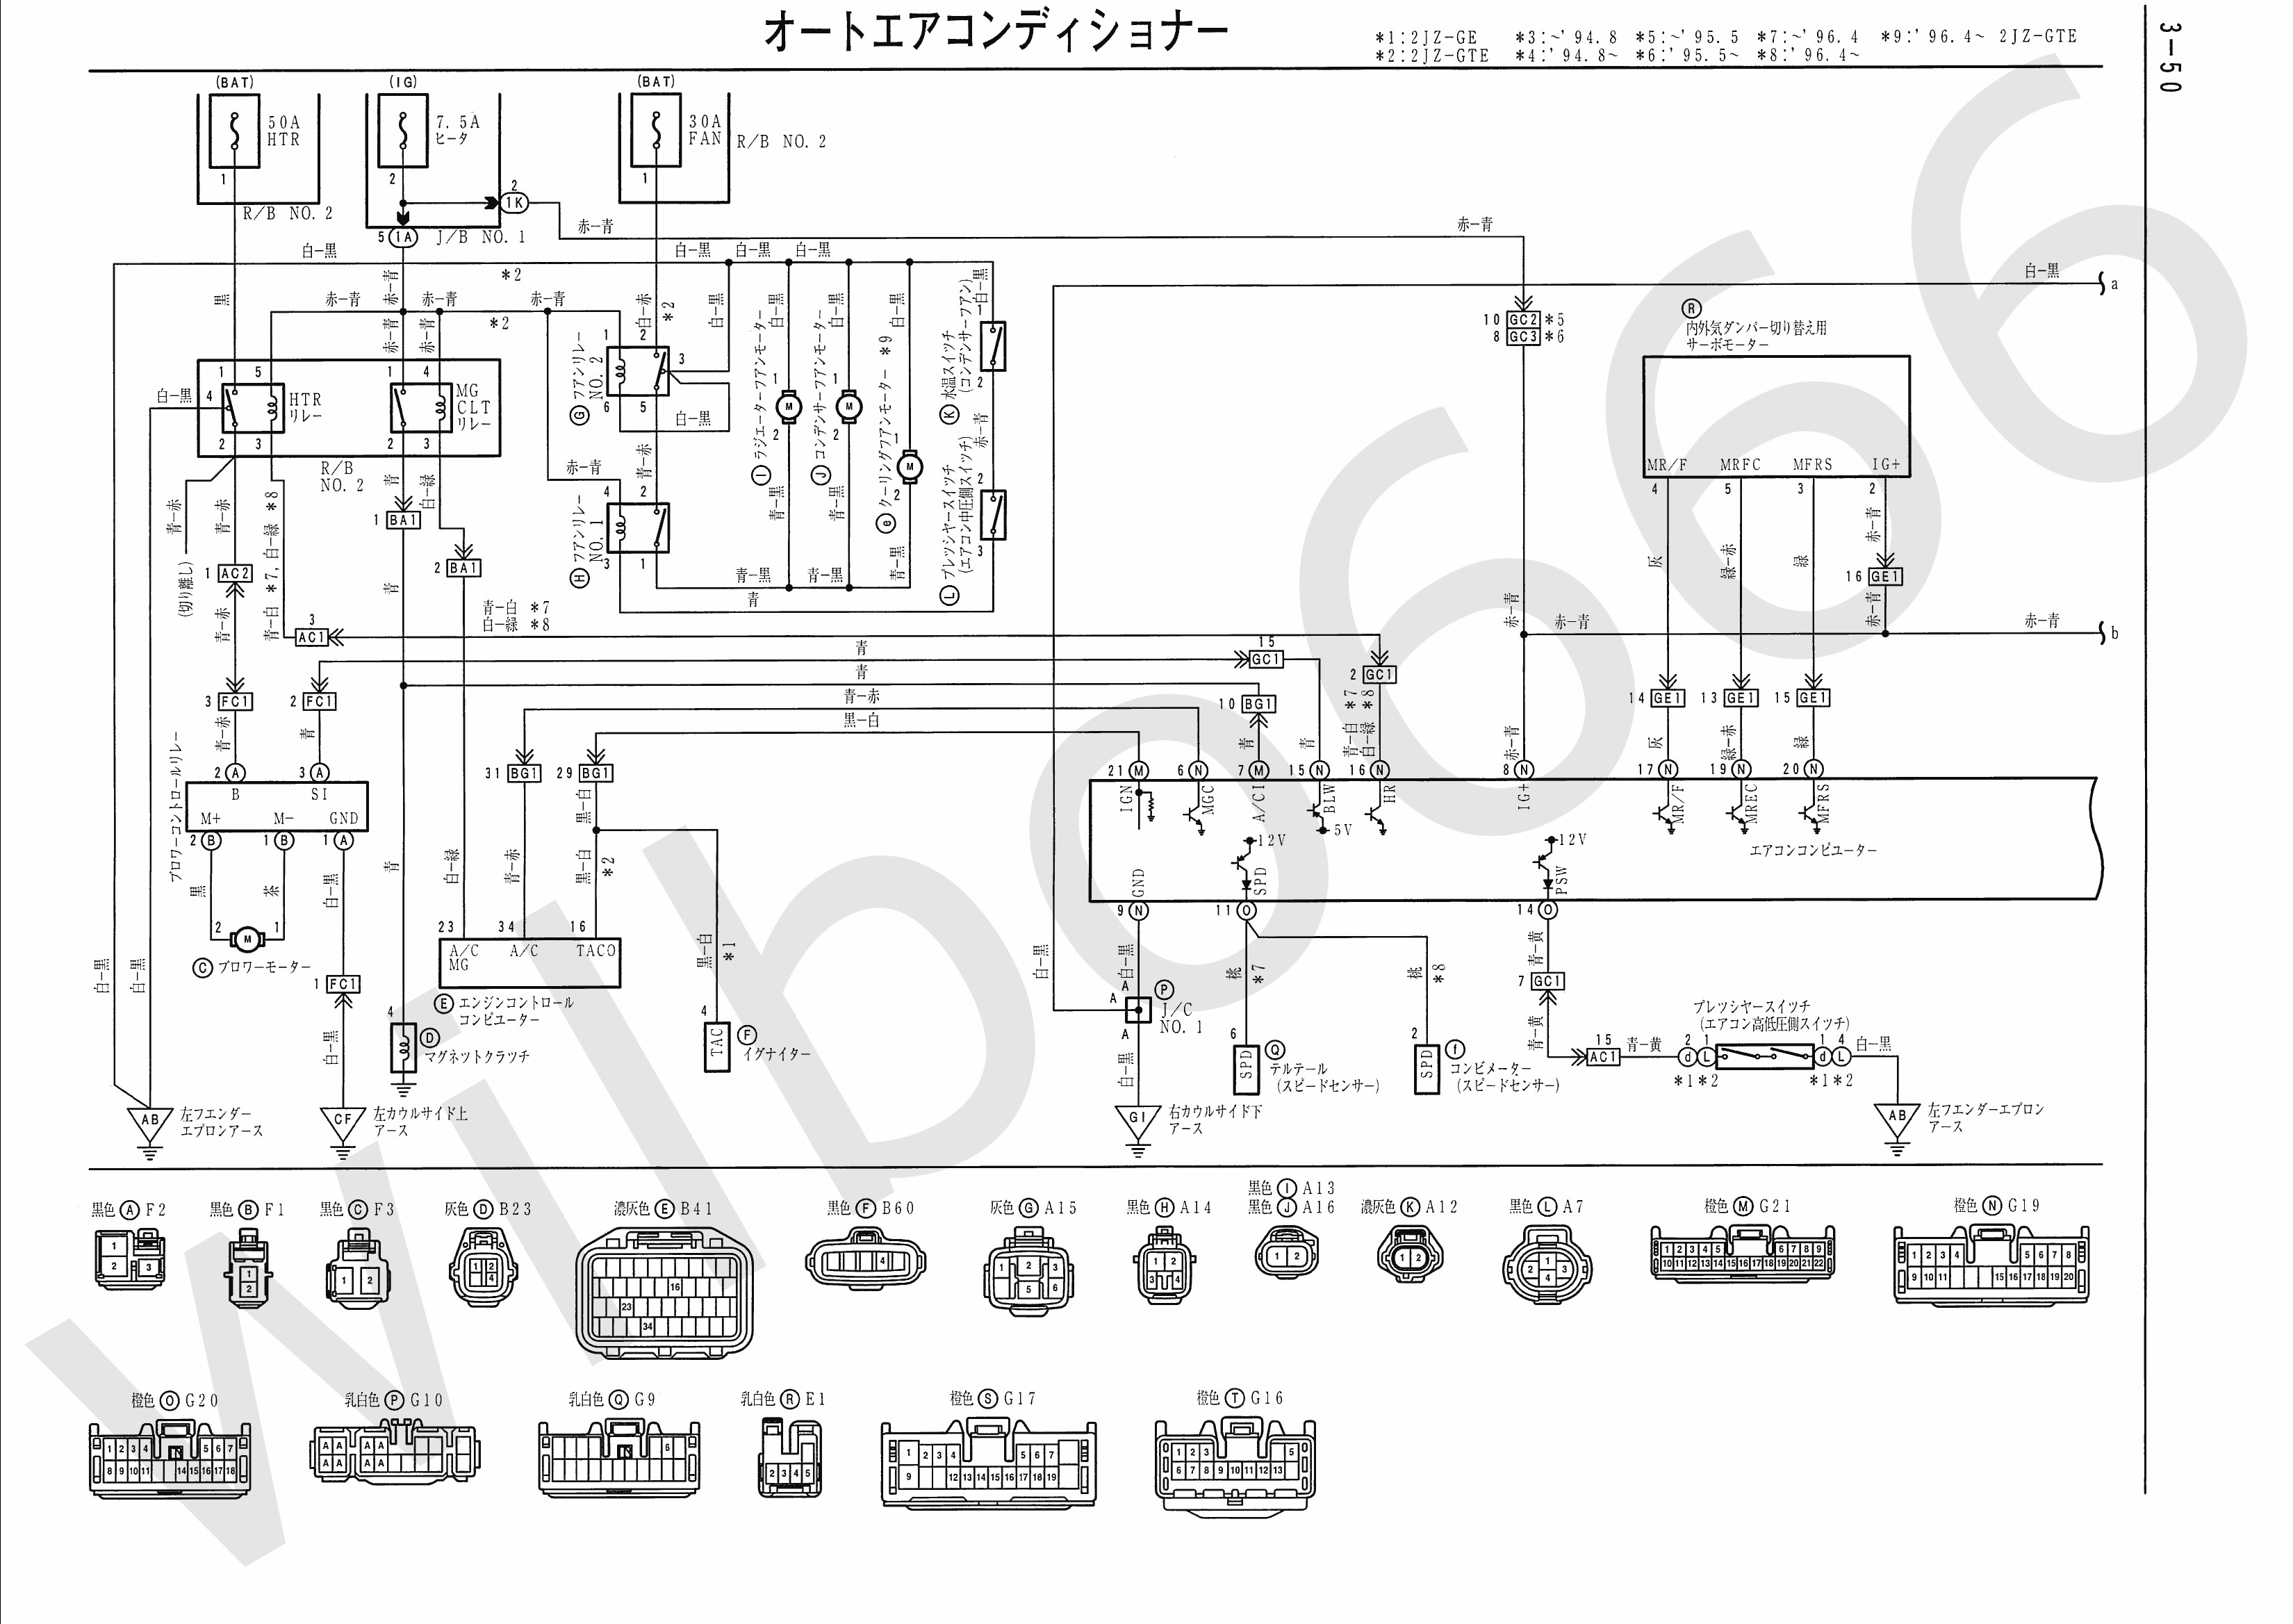 car air conditioning system wiring diagram pdf - toyota ac wiring diagram  new car air conditioning